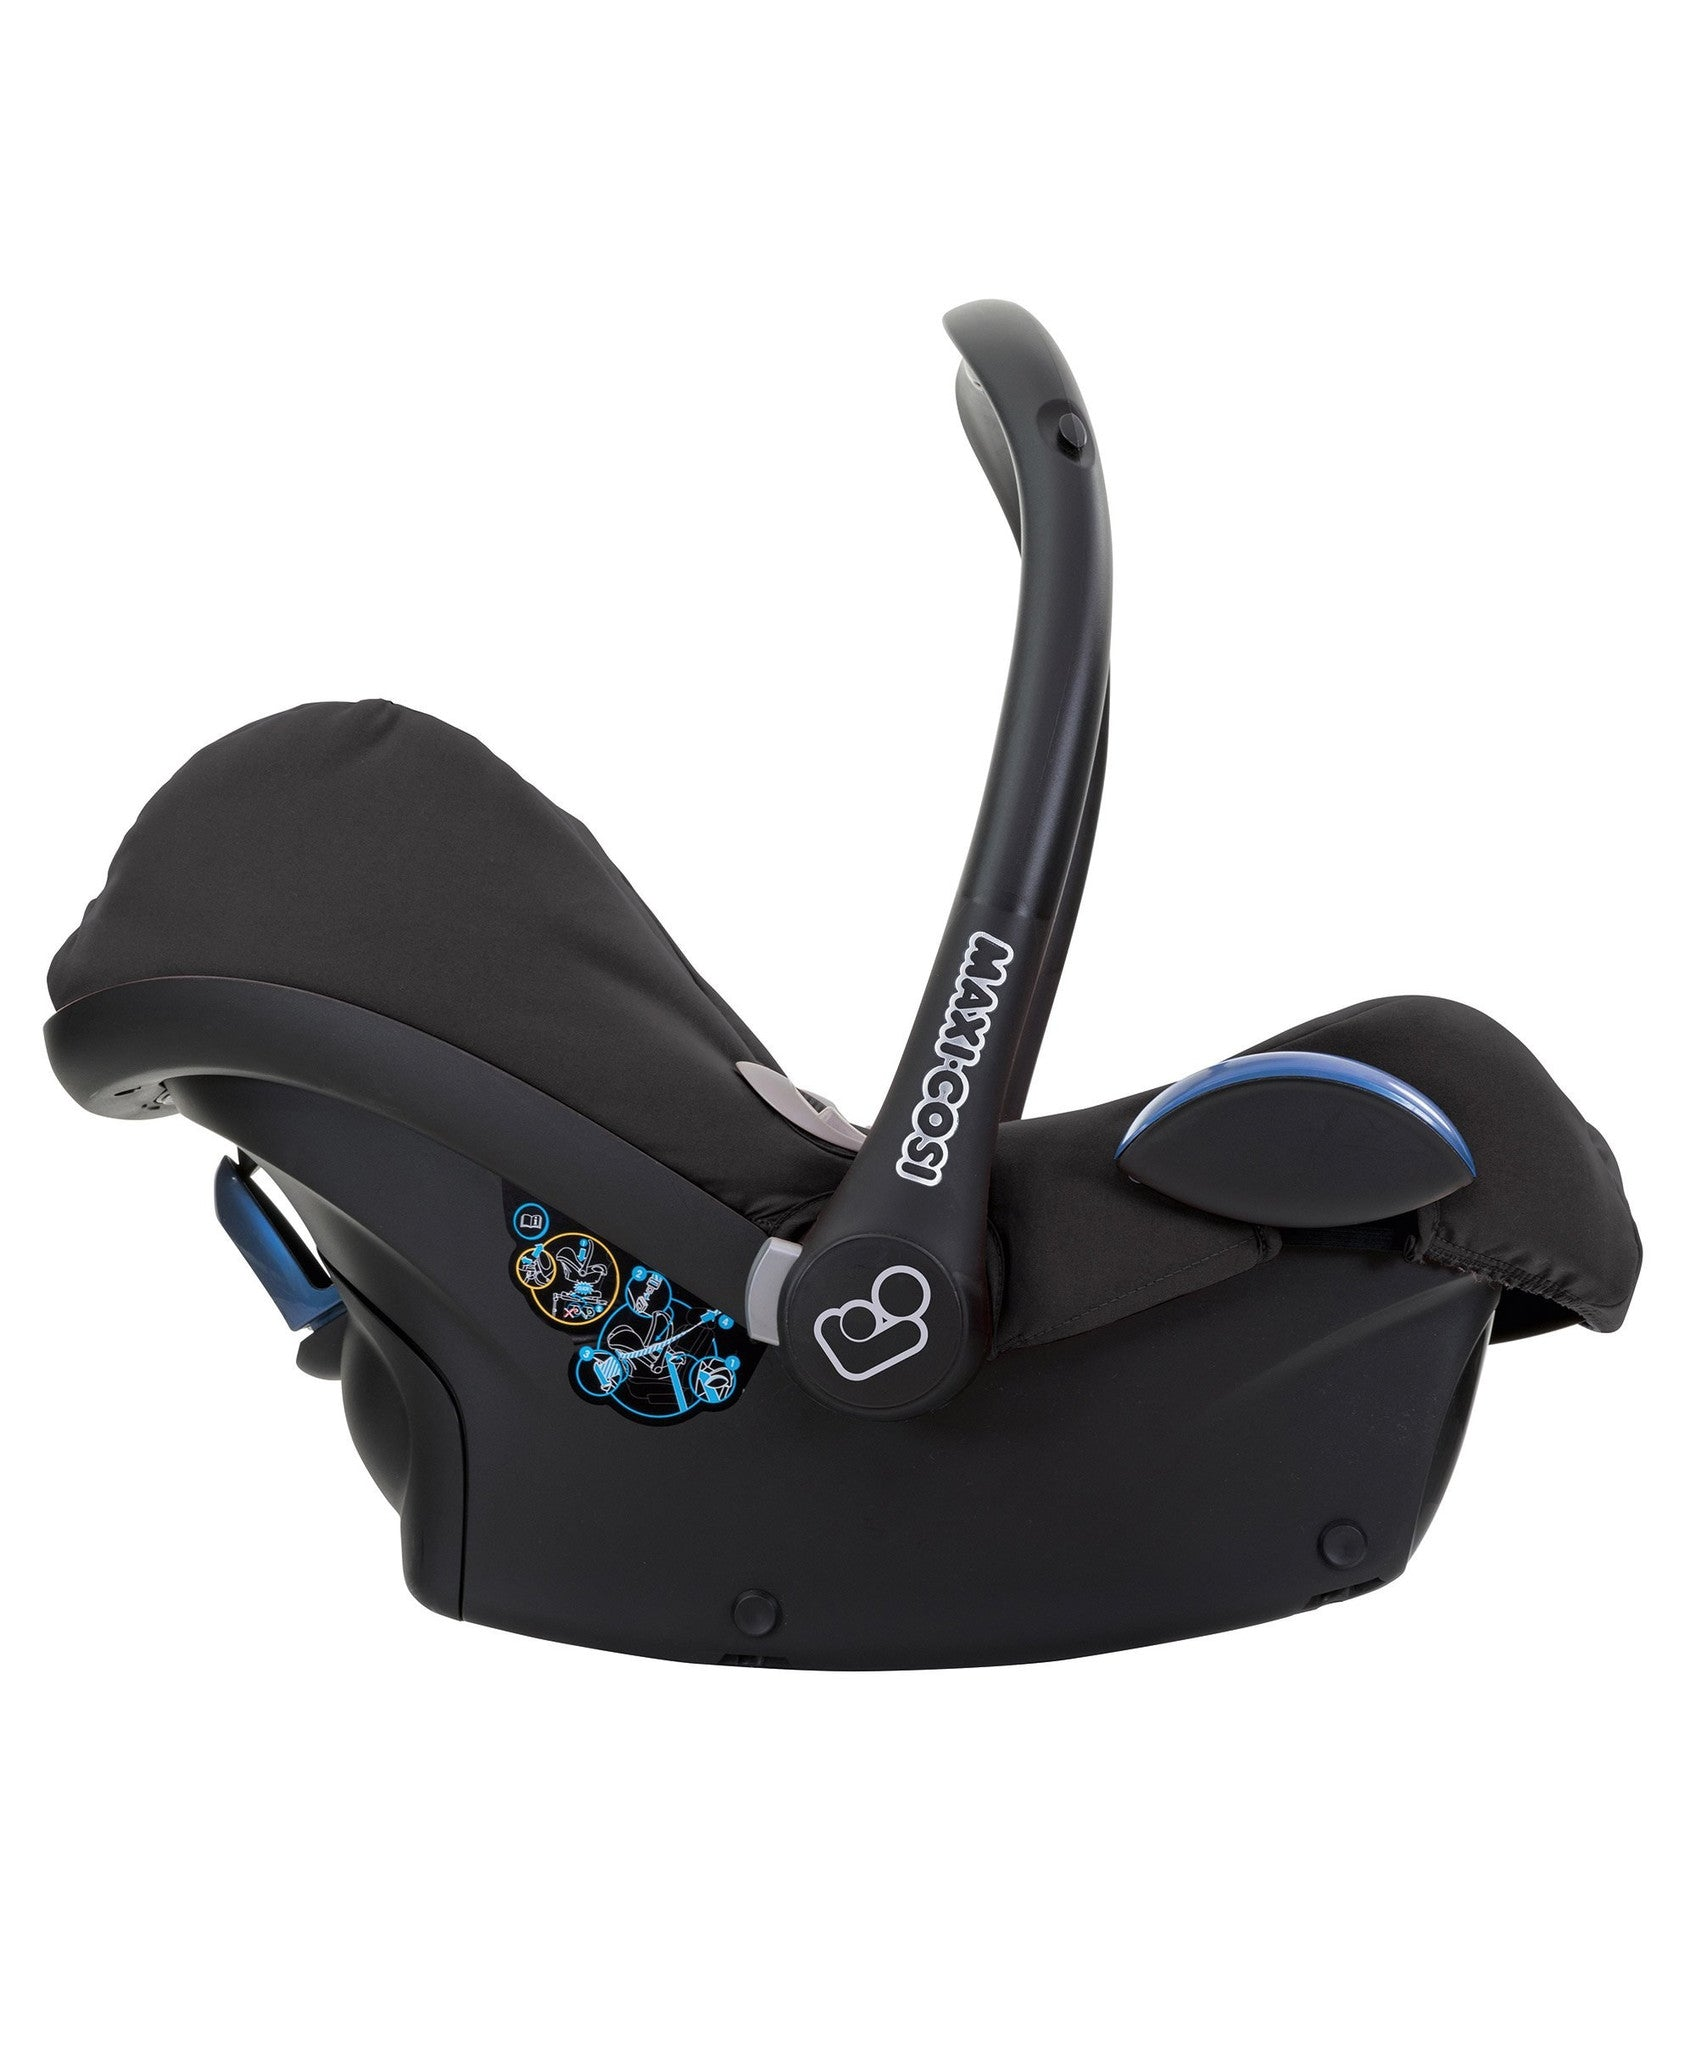 maxi cosi cabriofix car seat black raven onco. Black Bedroom Furniture Sets. Home Design Ideas